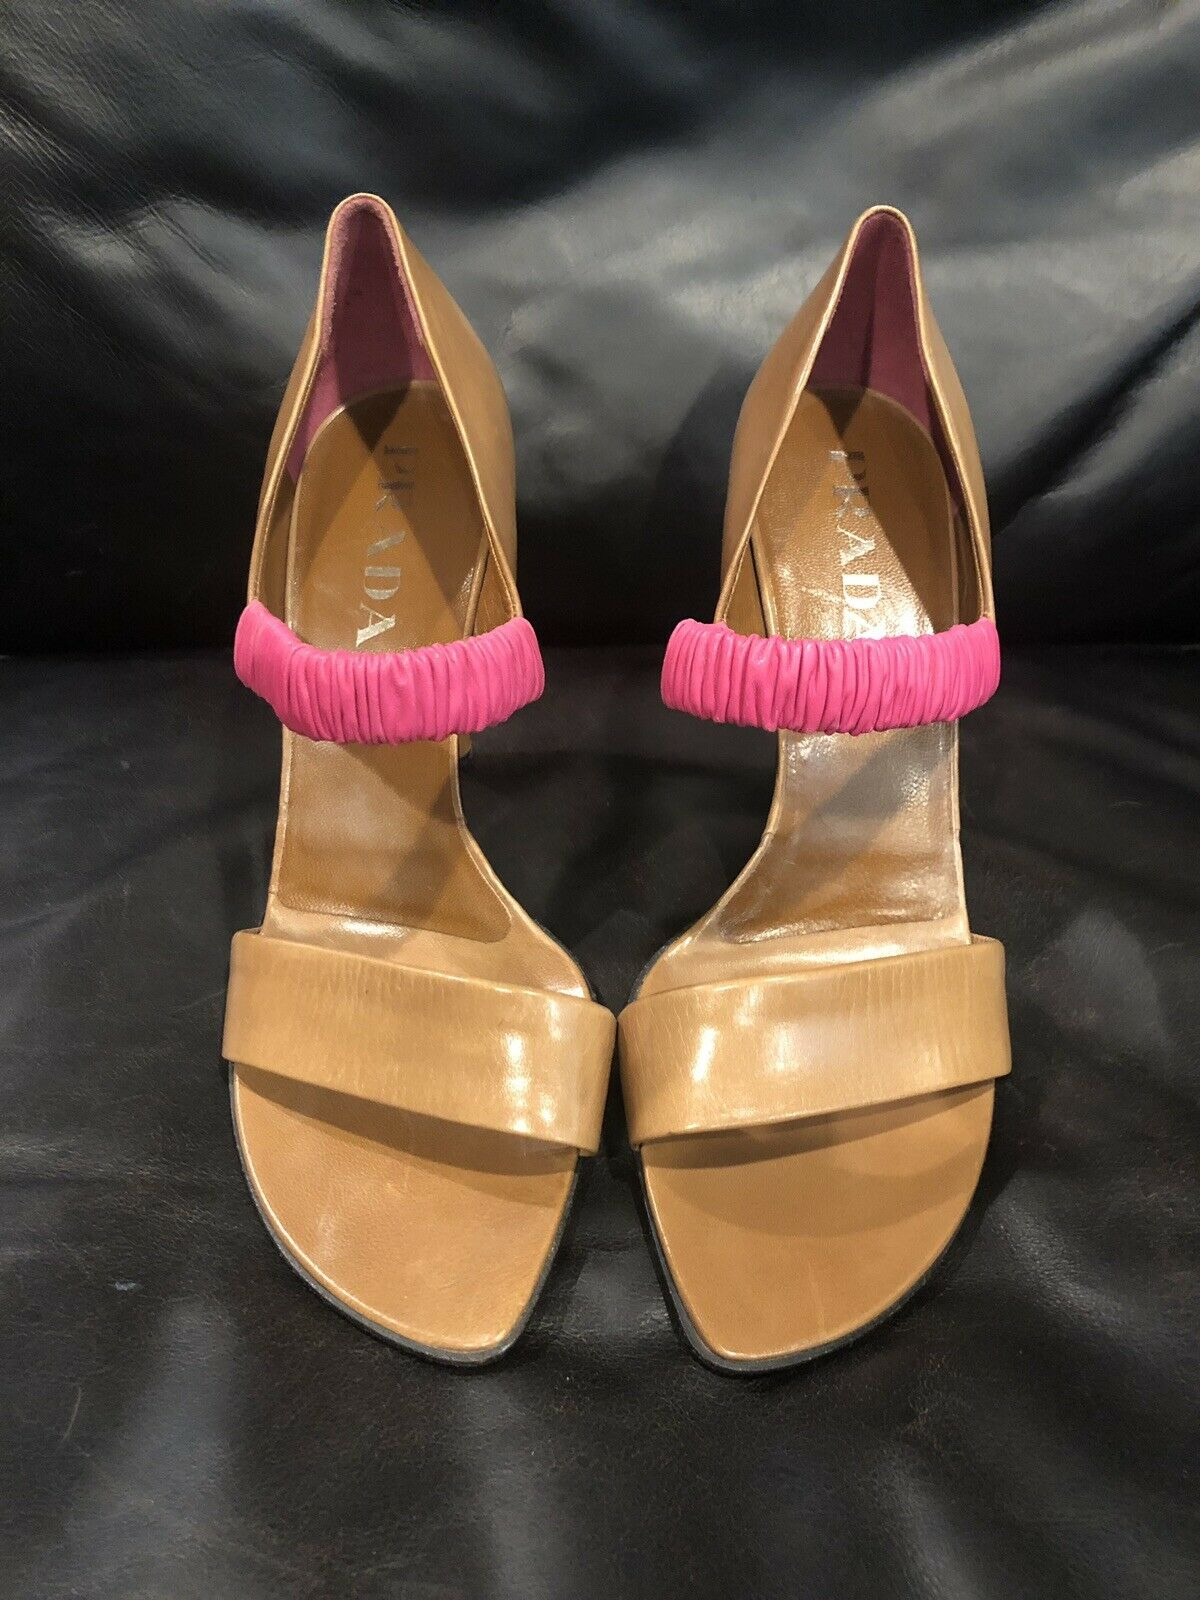 PRADA Tan Heels With Pink Leather Elastic Strap- Size 39 US 8.5